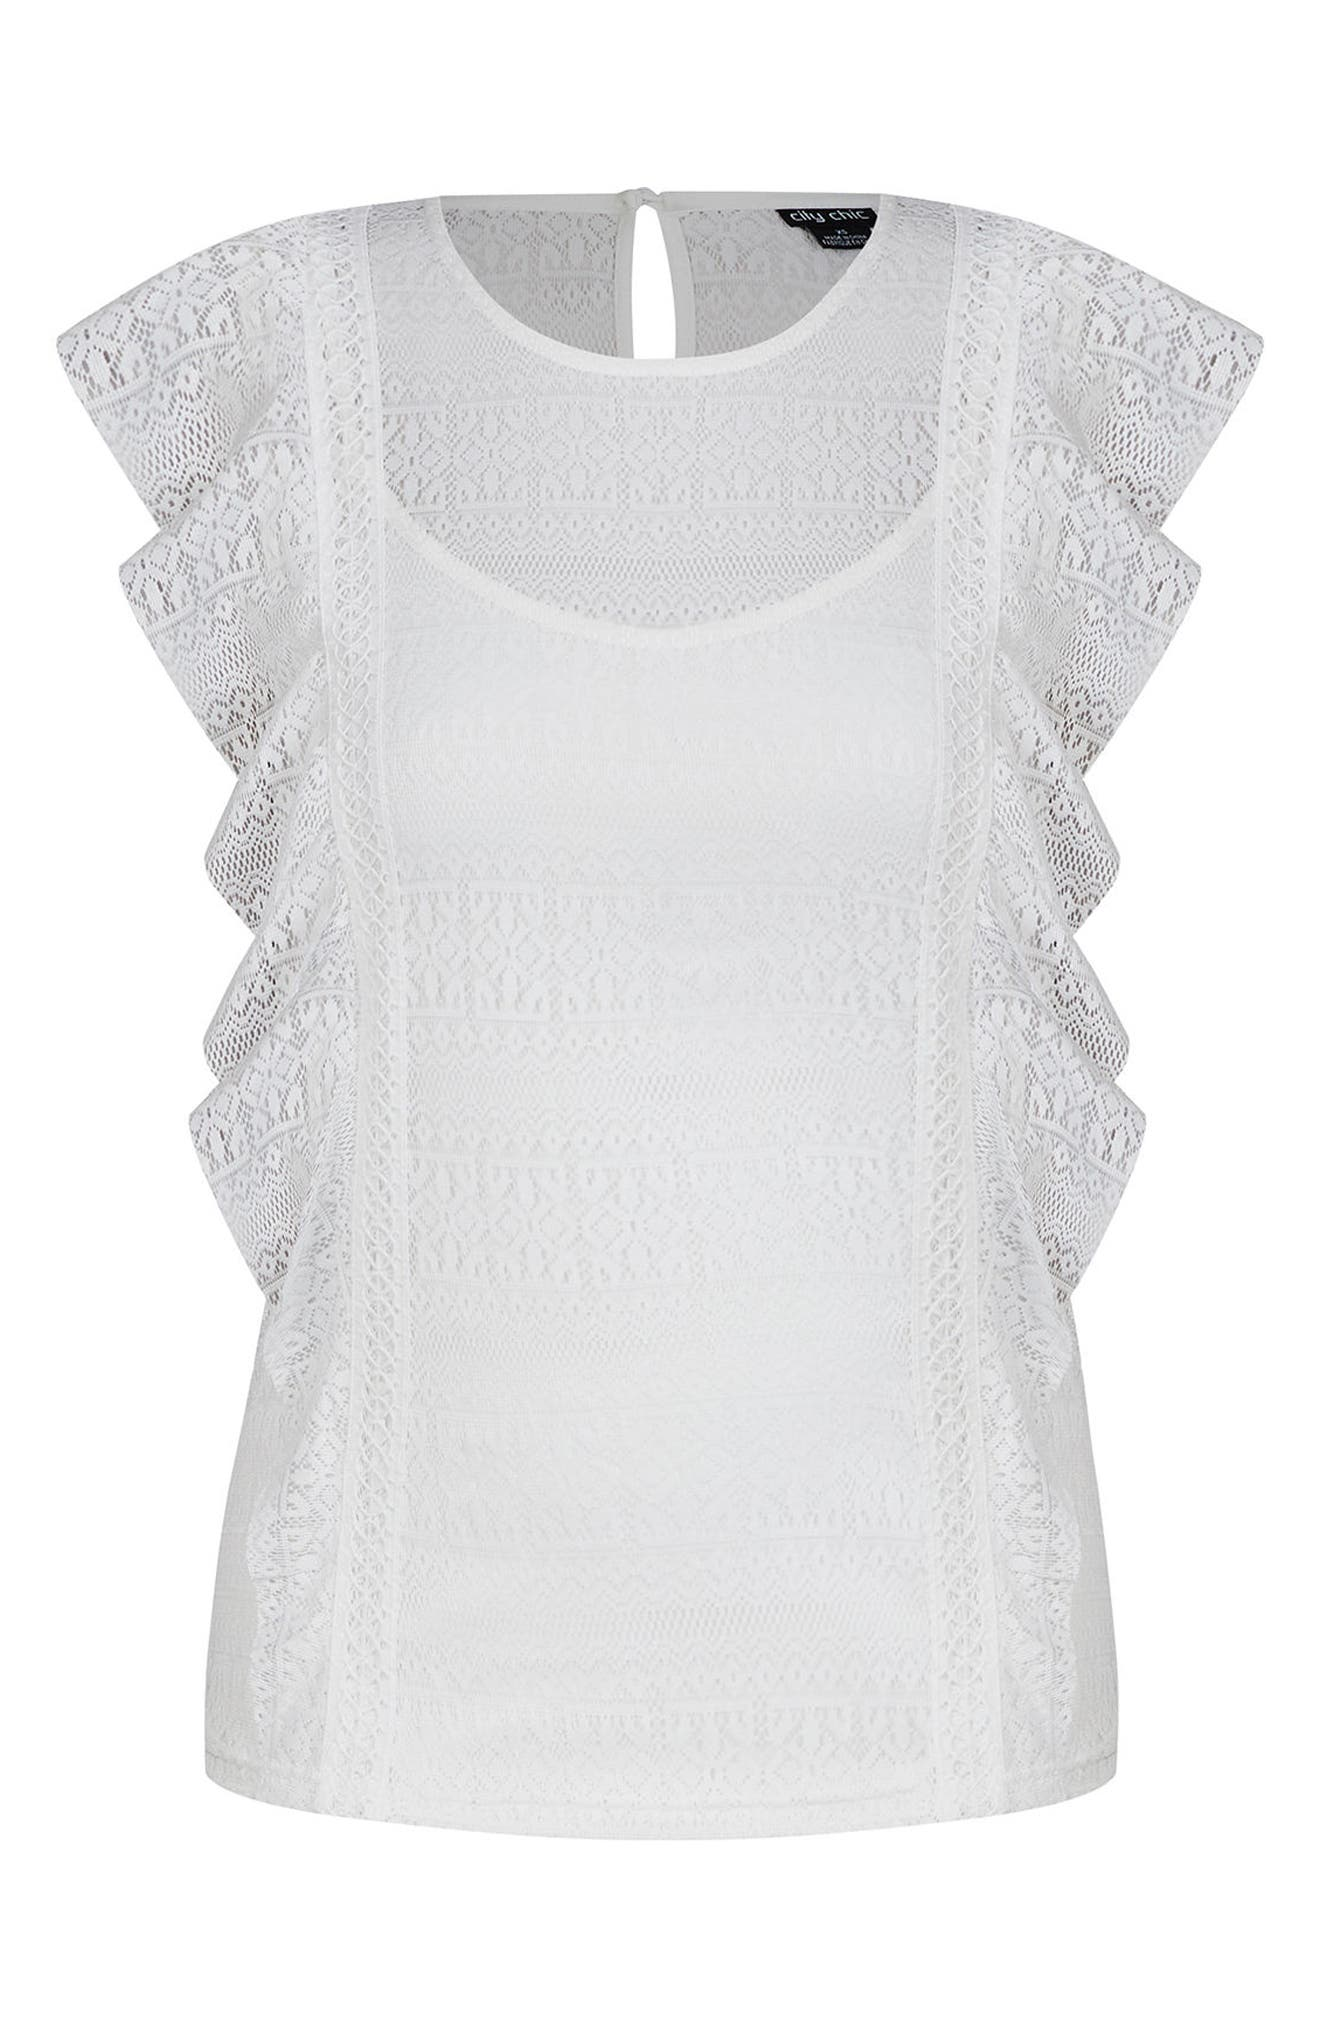 Dreamy Lace Top,                             Alternate thumbnail 4, color,                             Ivory